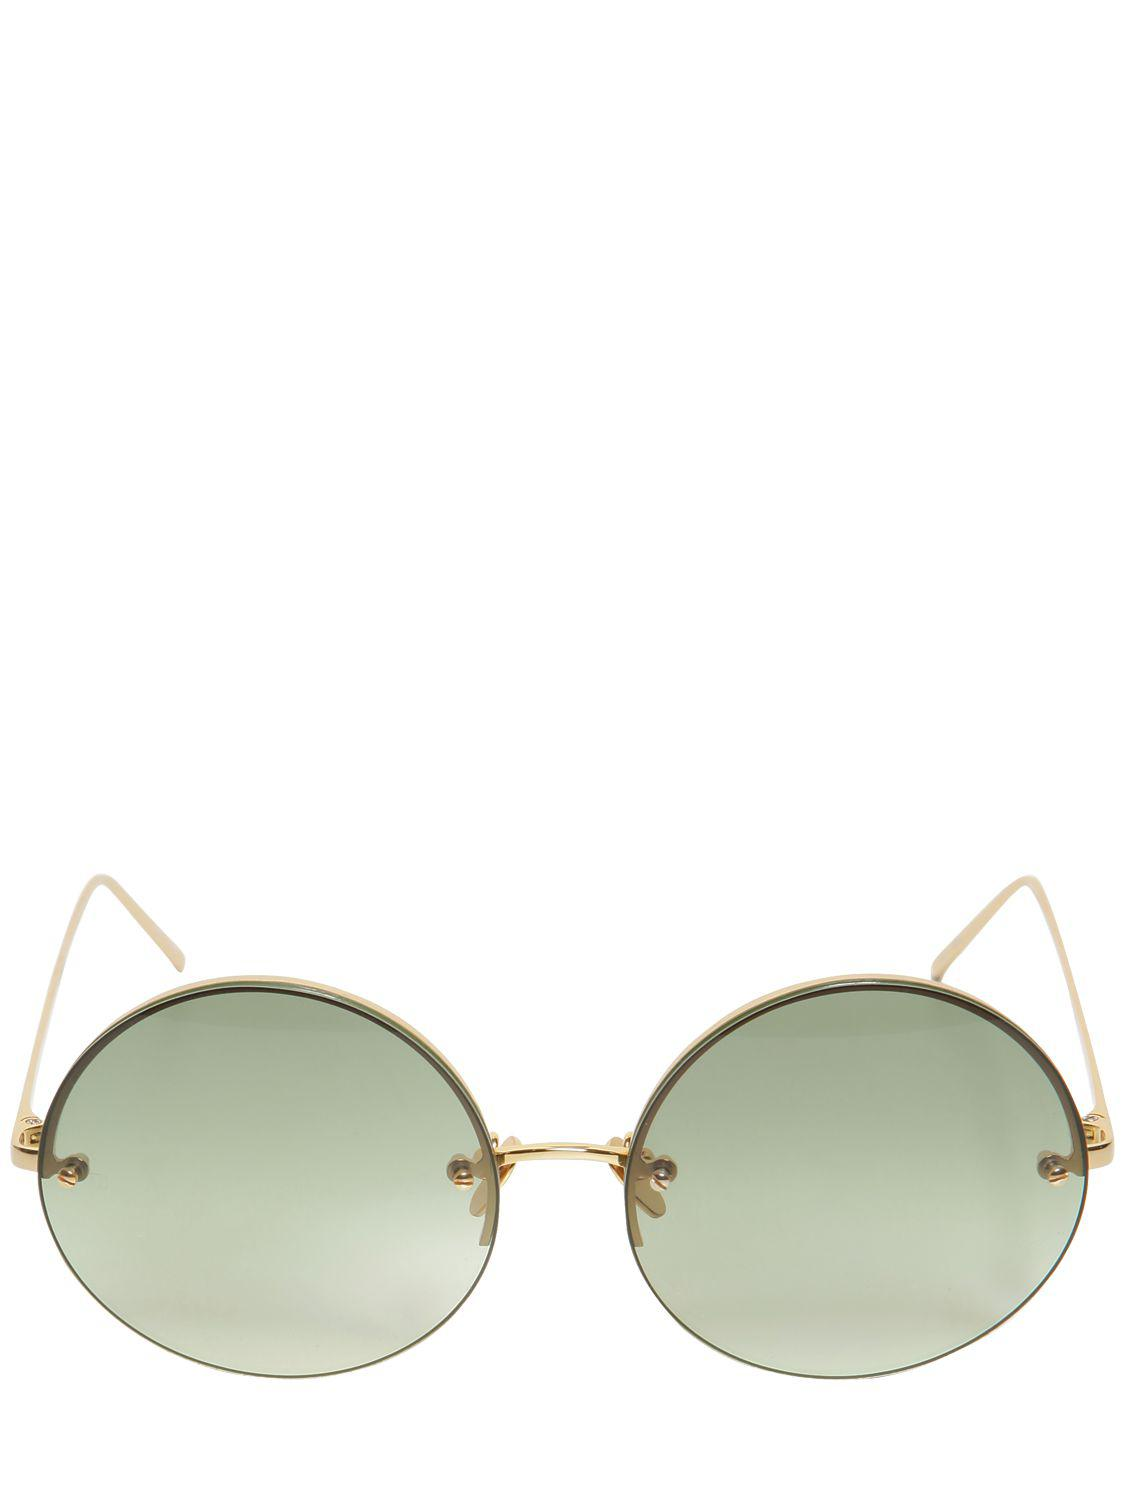 5794e43d134 Linda Farrow 565 C8 Round Gold Plated Sunglasses in Green - Lyst